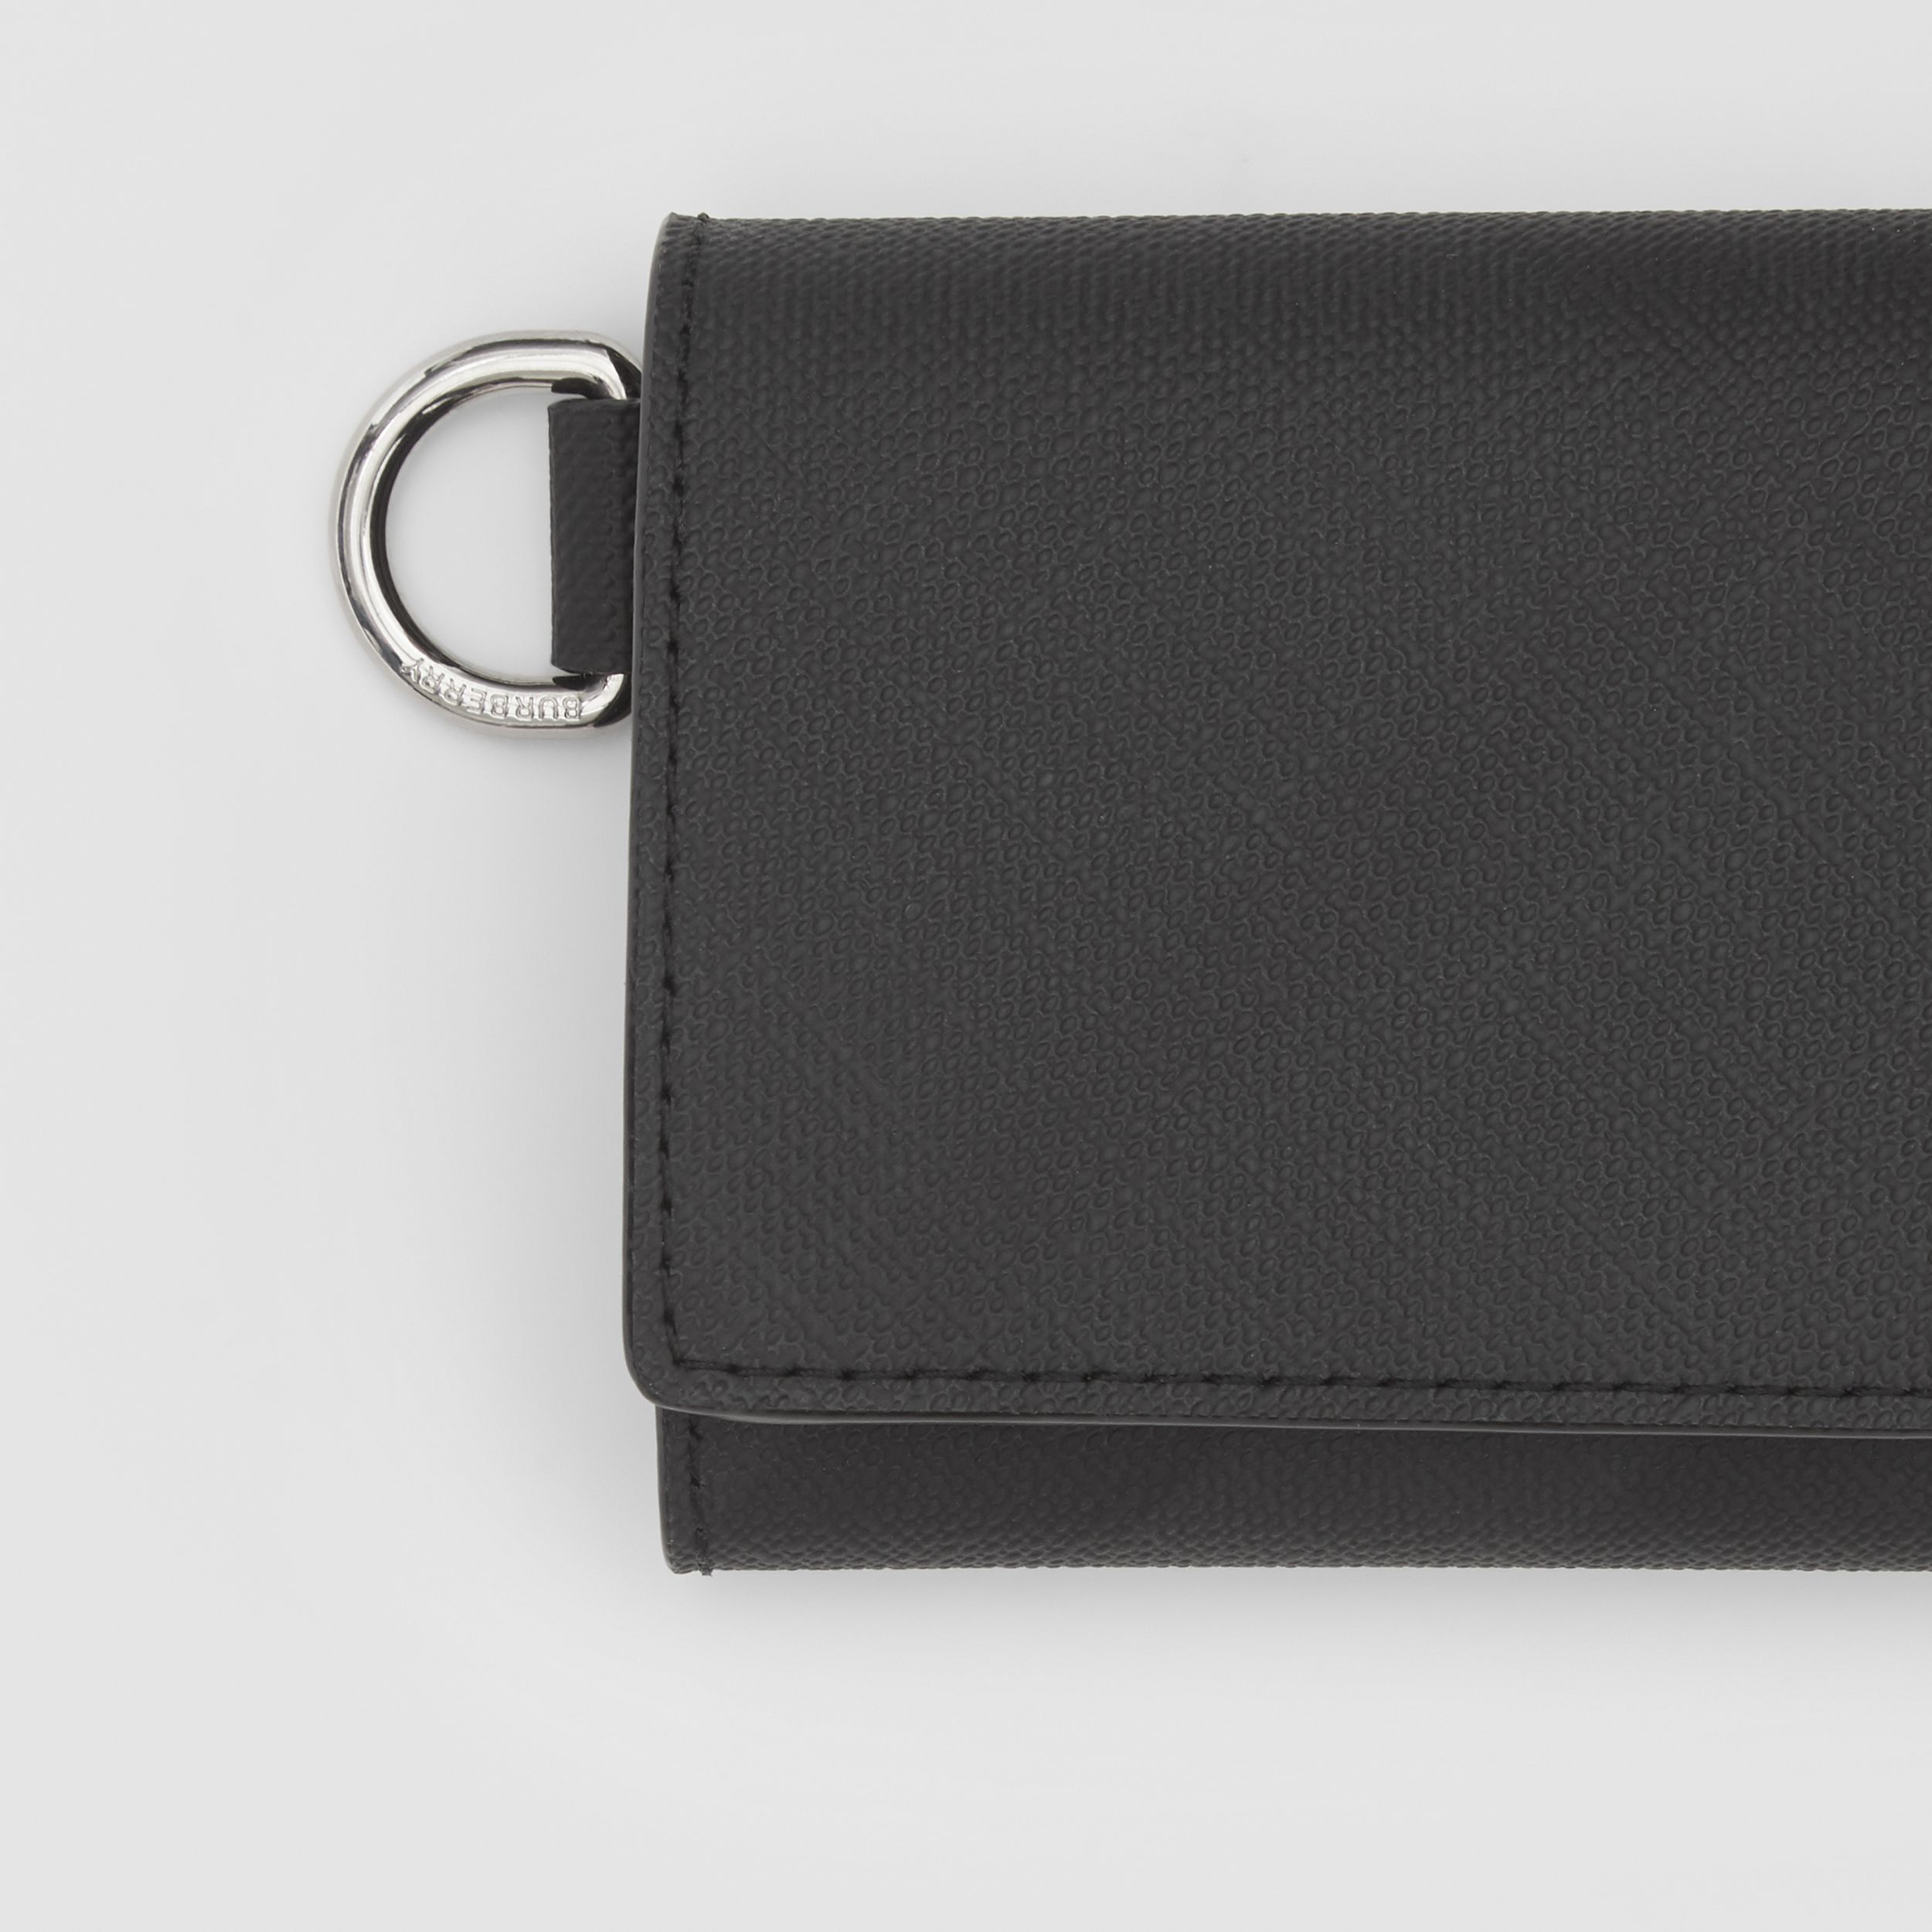 Small London Check Folding Wallet in Dark Charcoal - Men | Burberry - 2